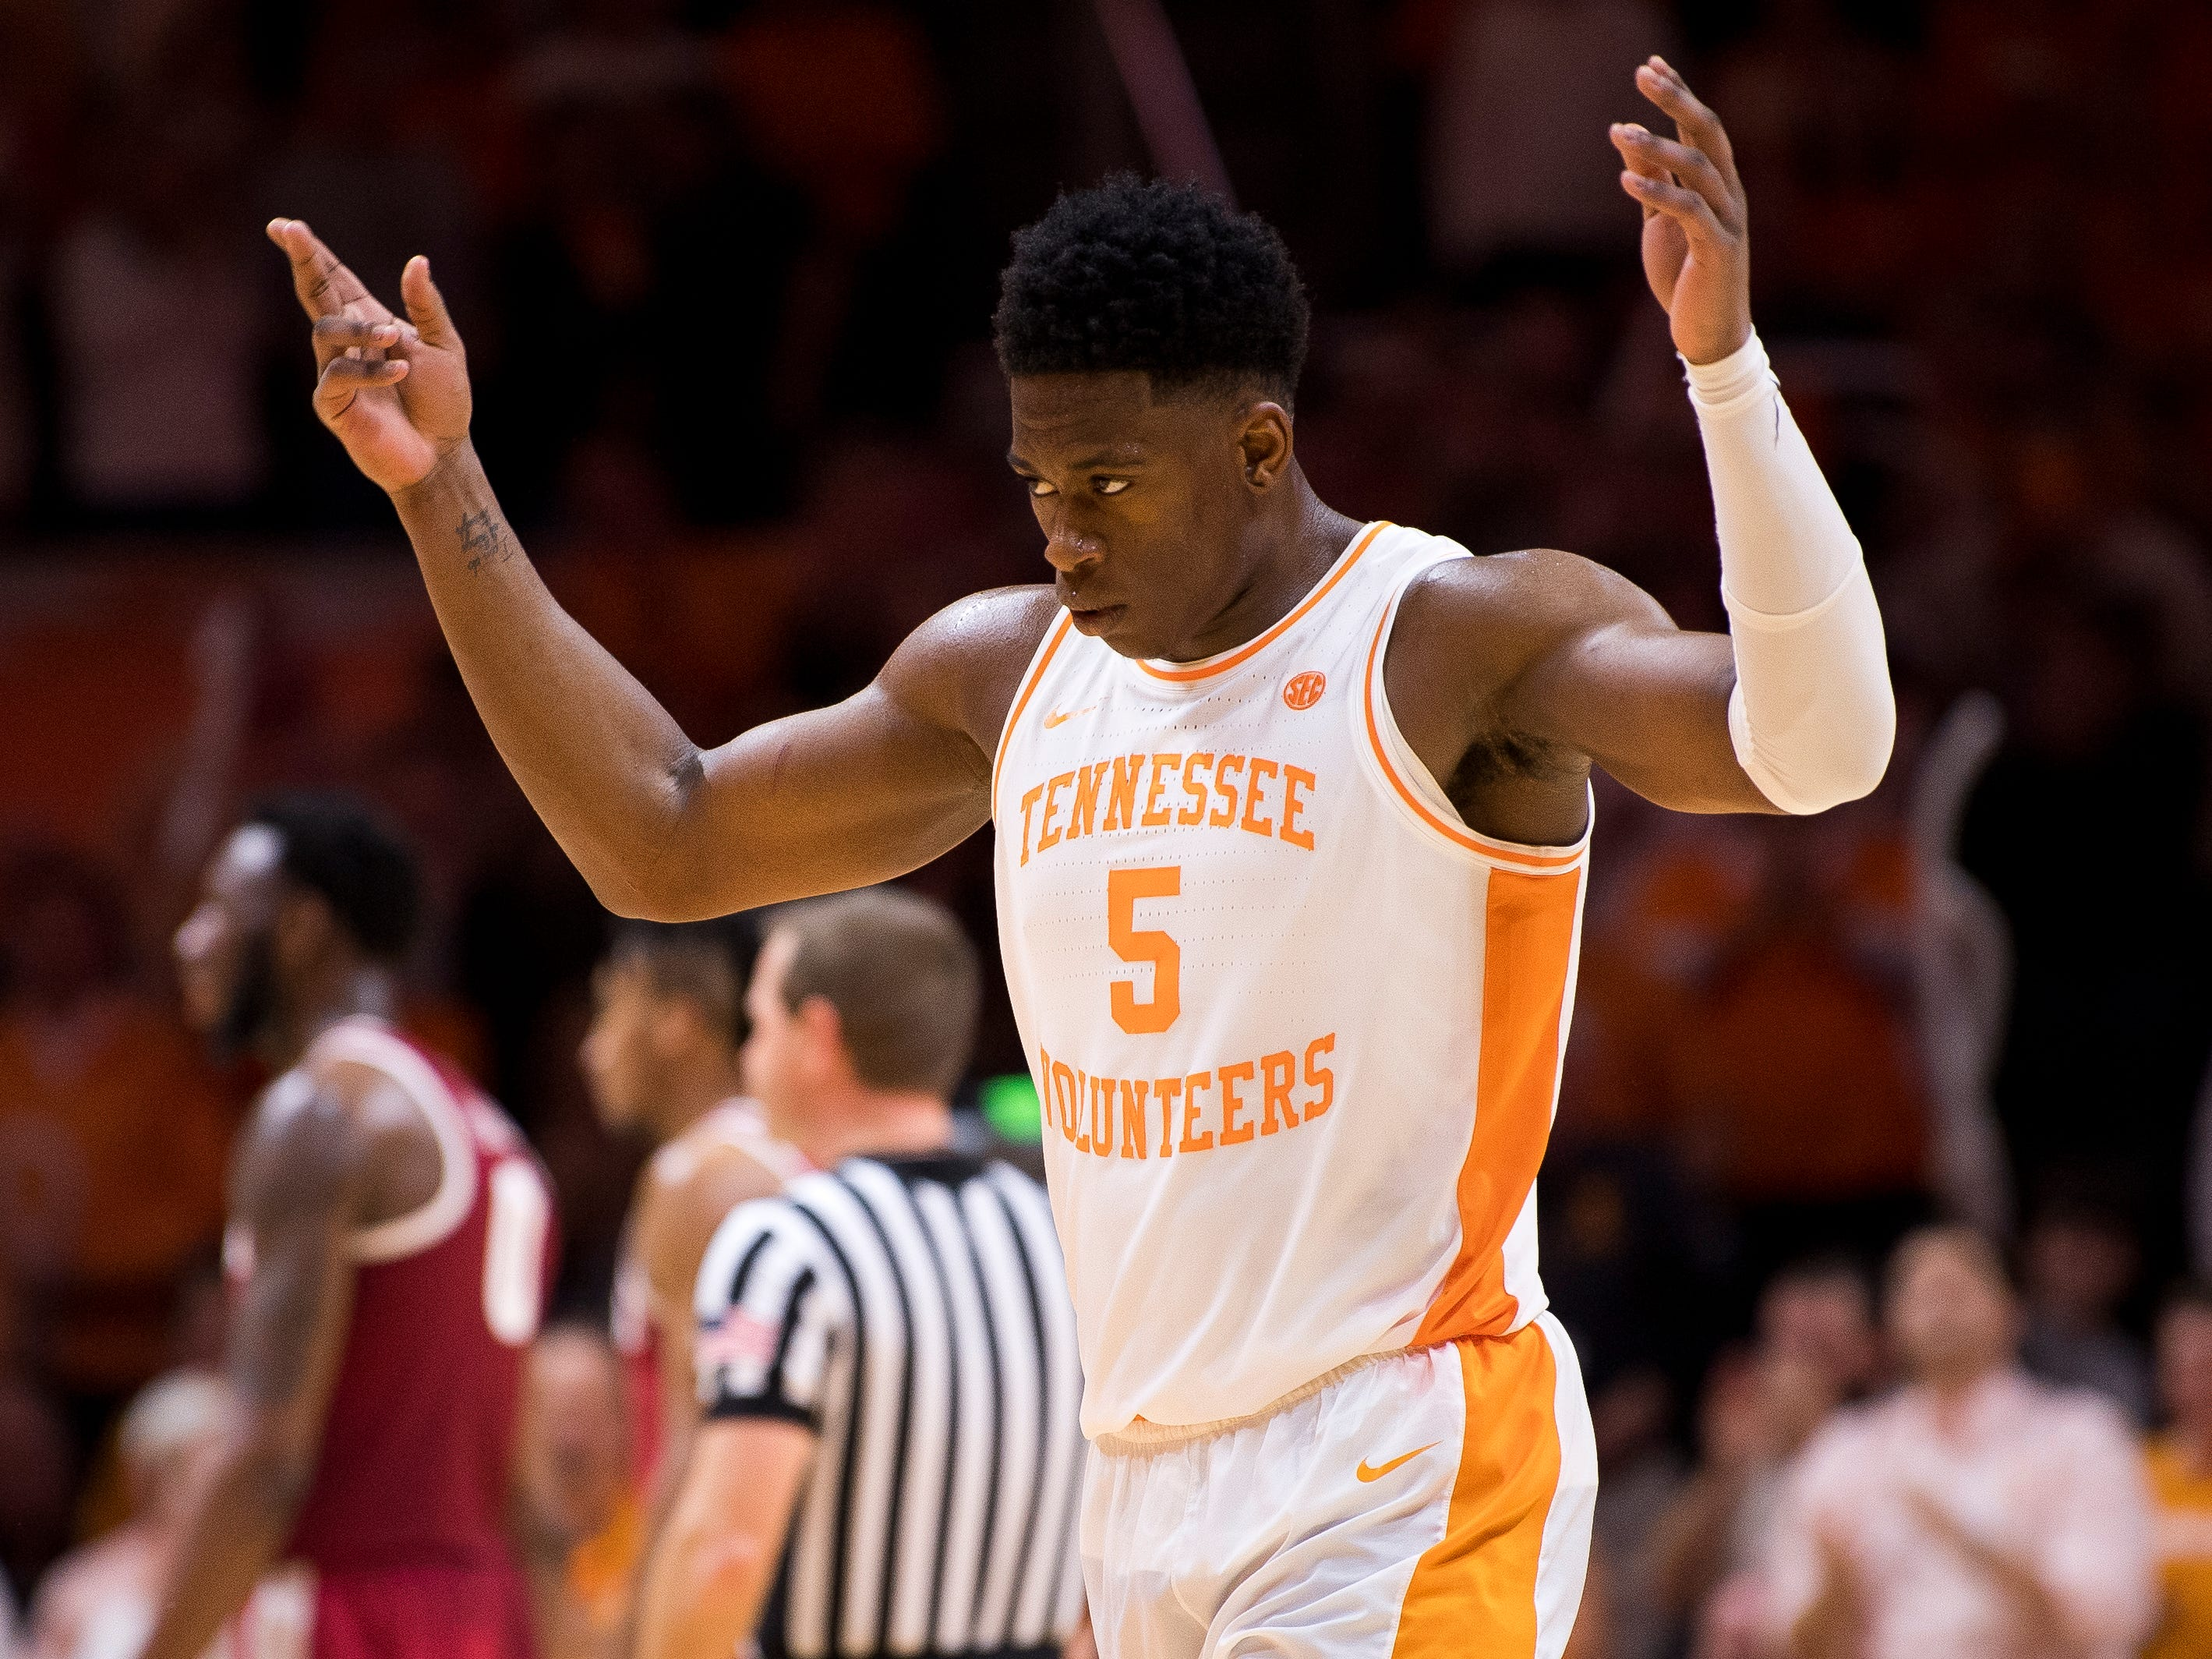 Tennessee guard Admiral Schofield (5) celebrates a call during the second half of Tennessee's home SEC conference game against Alabama at Thompson-Boling Arena in Knoxville on Saturday, January 19, 2019.